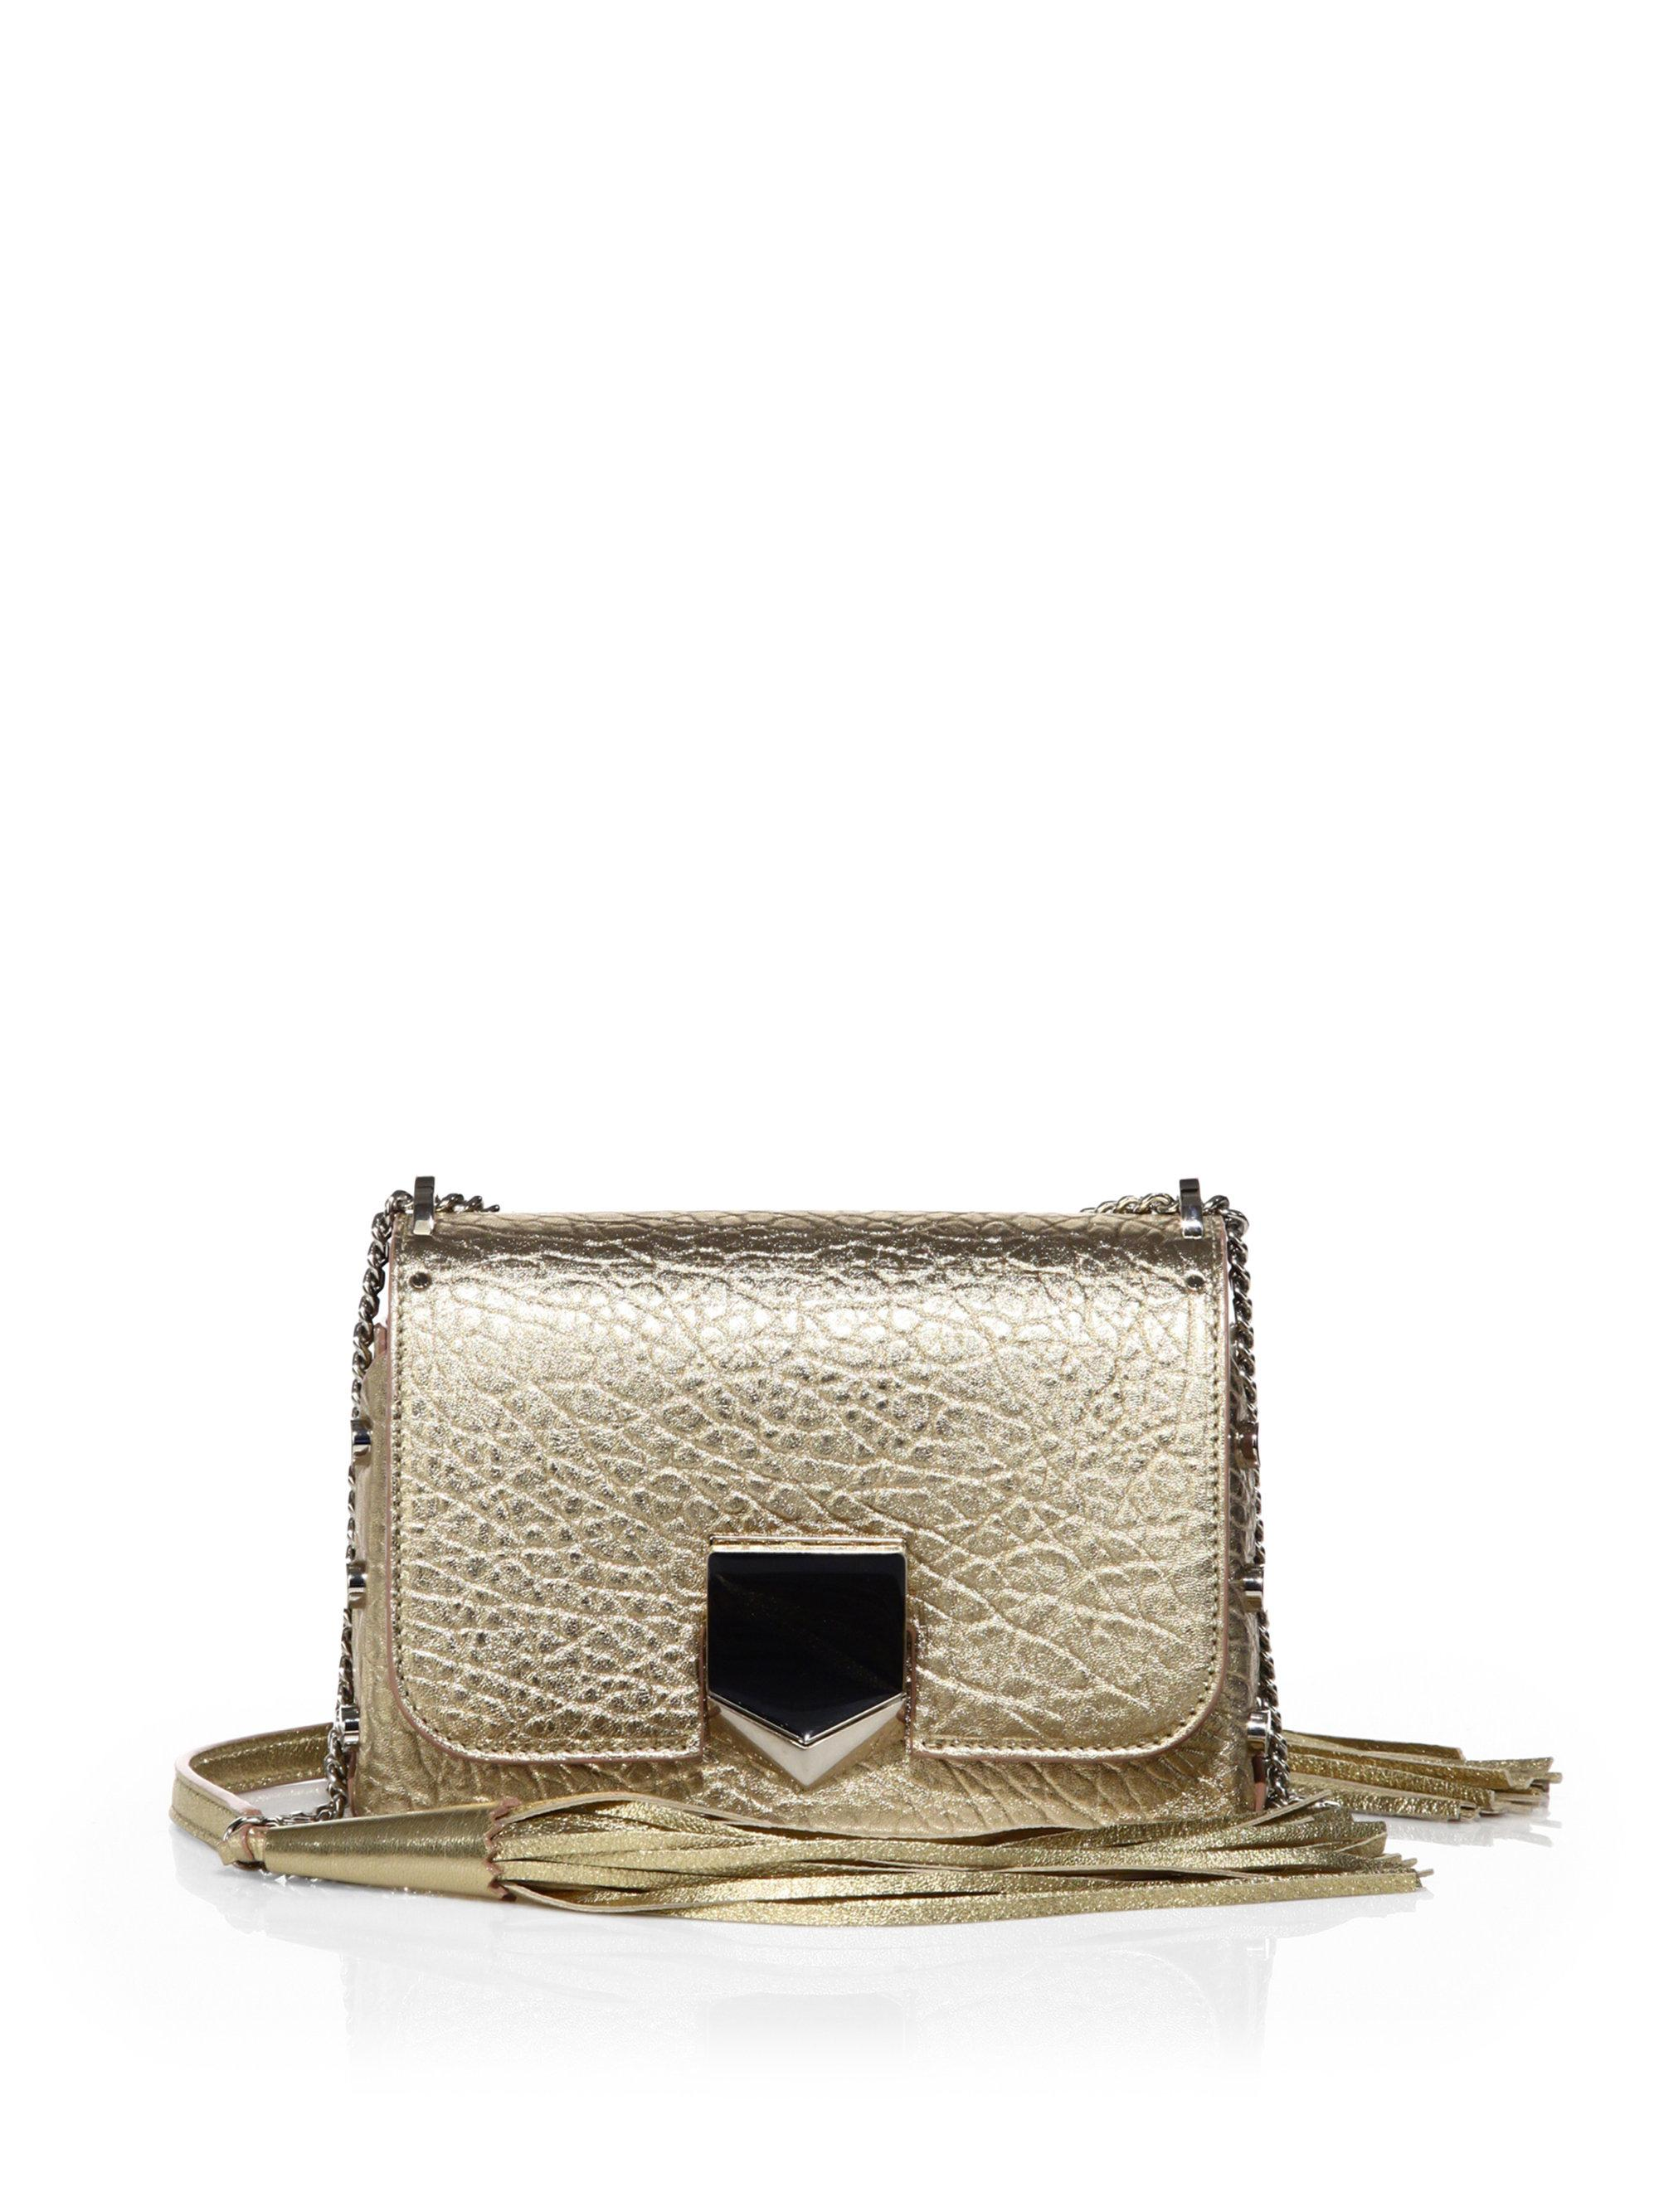 6ce64304c37 Lyst - Jimmy Choo Lockett Petite Metallic Leather Shoulder Bag in ...